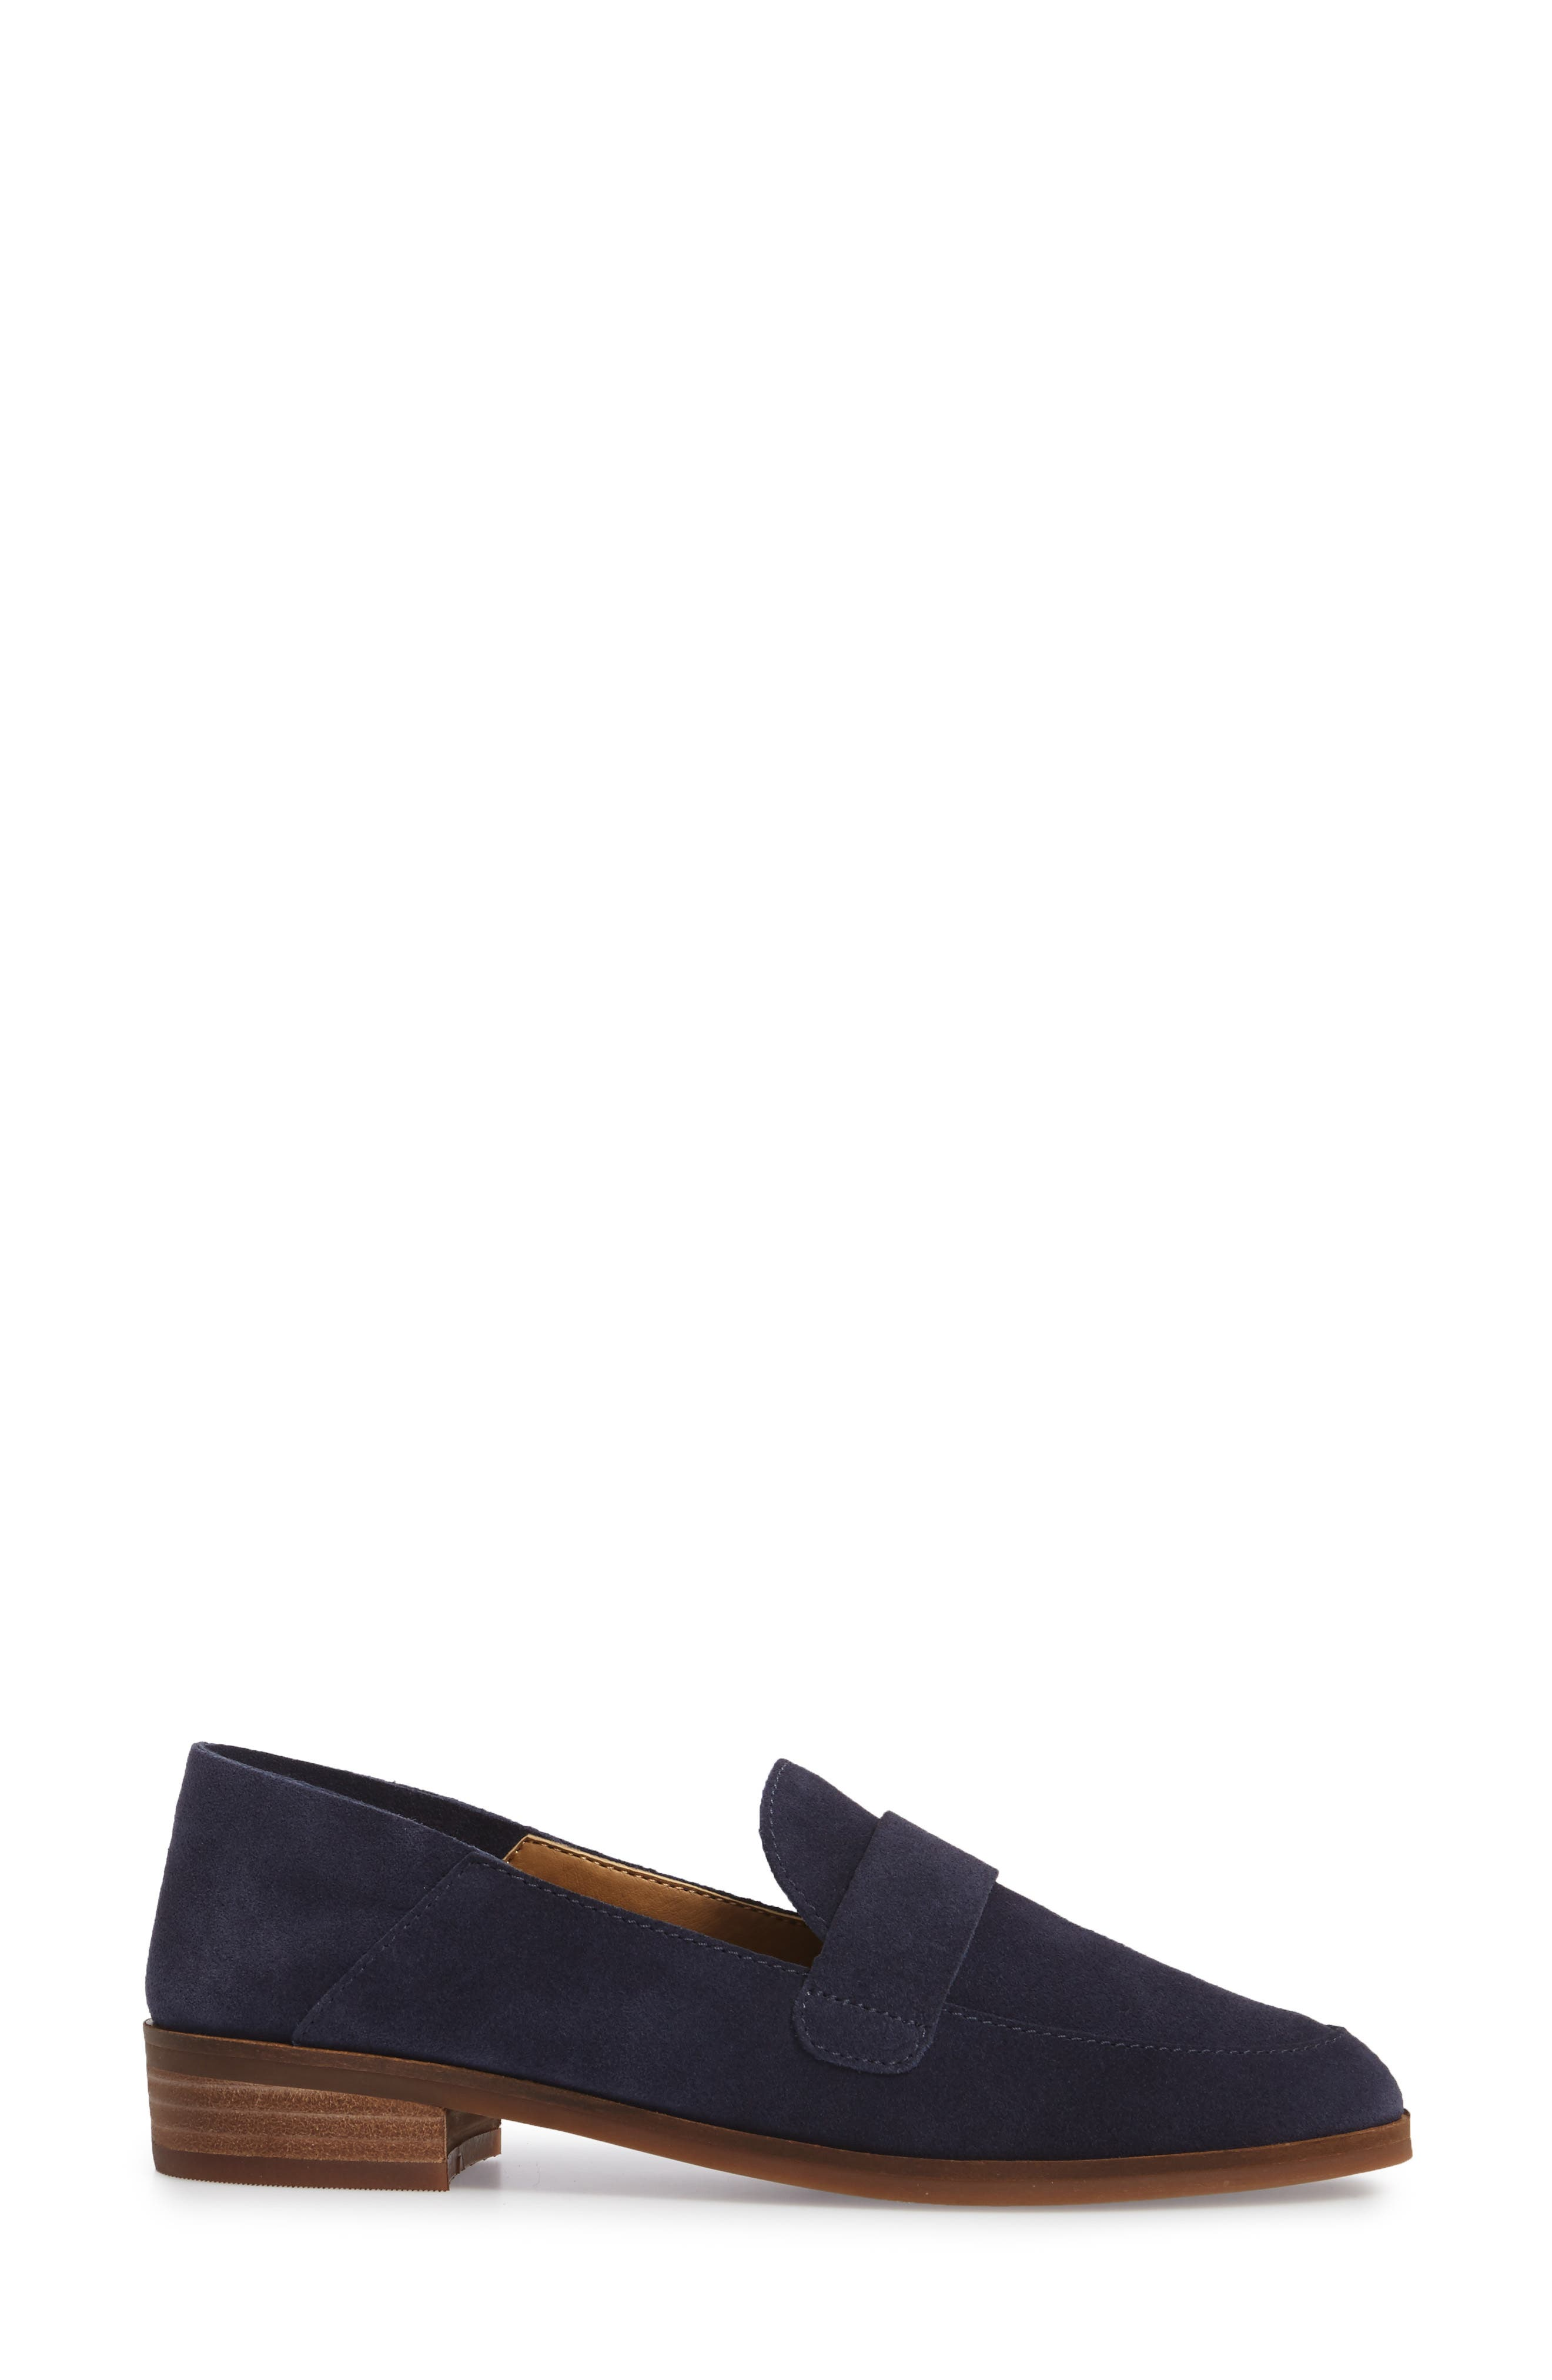 Chennie Loafer,                             Alternate thumbnail 11, color,